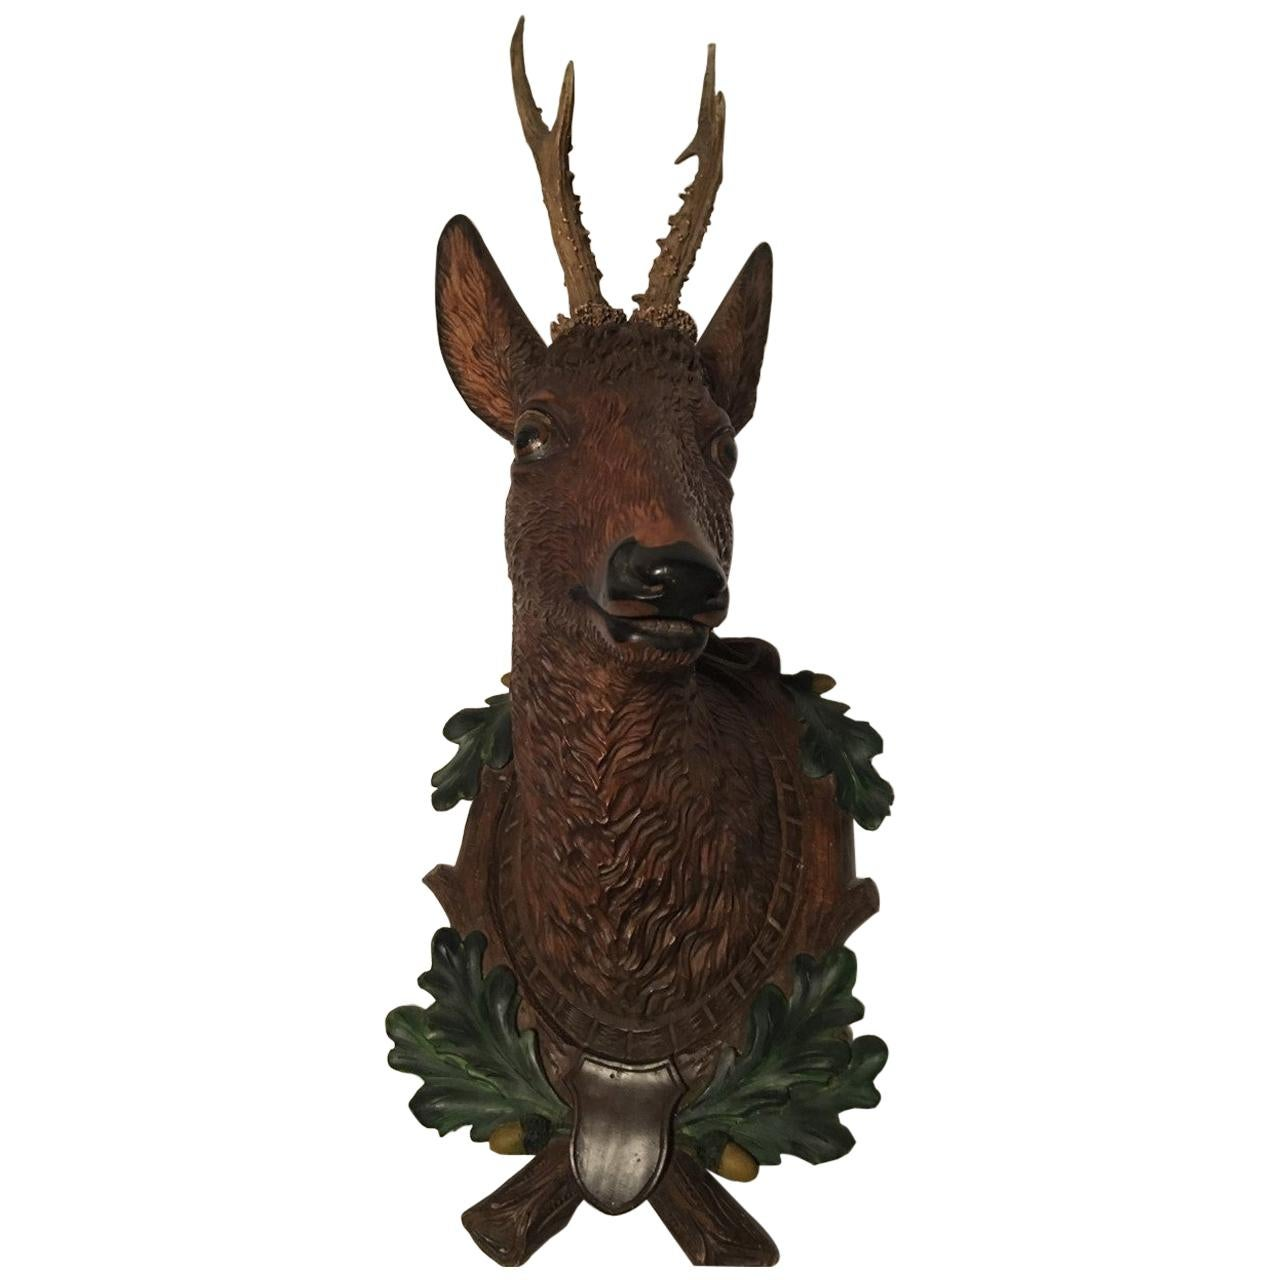 Swiss Realistic Hand Carved Deer Head with Real Antlers, 19th Century